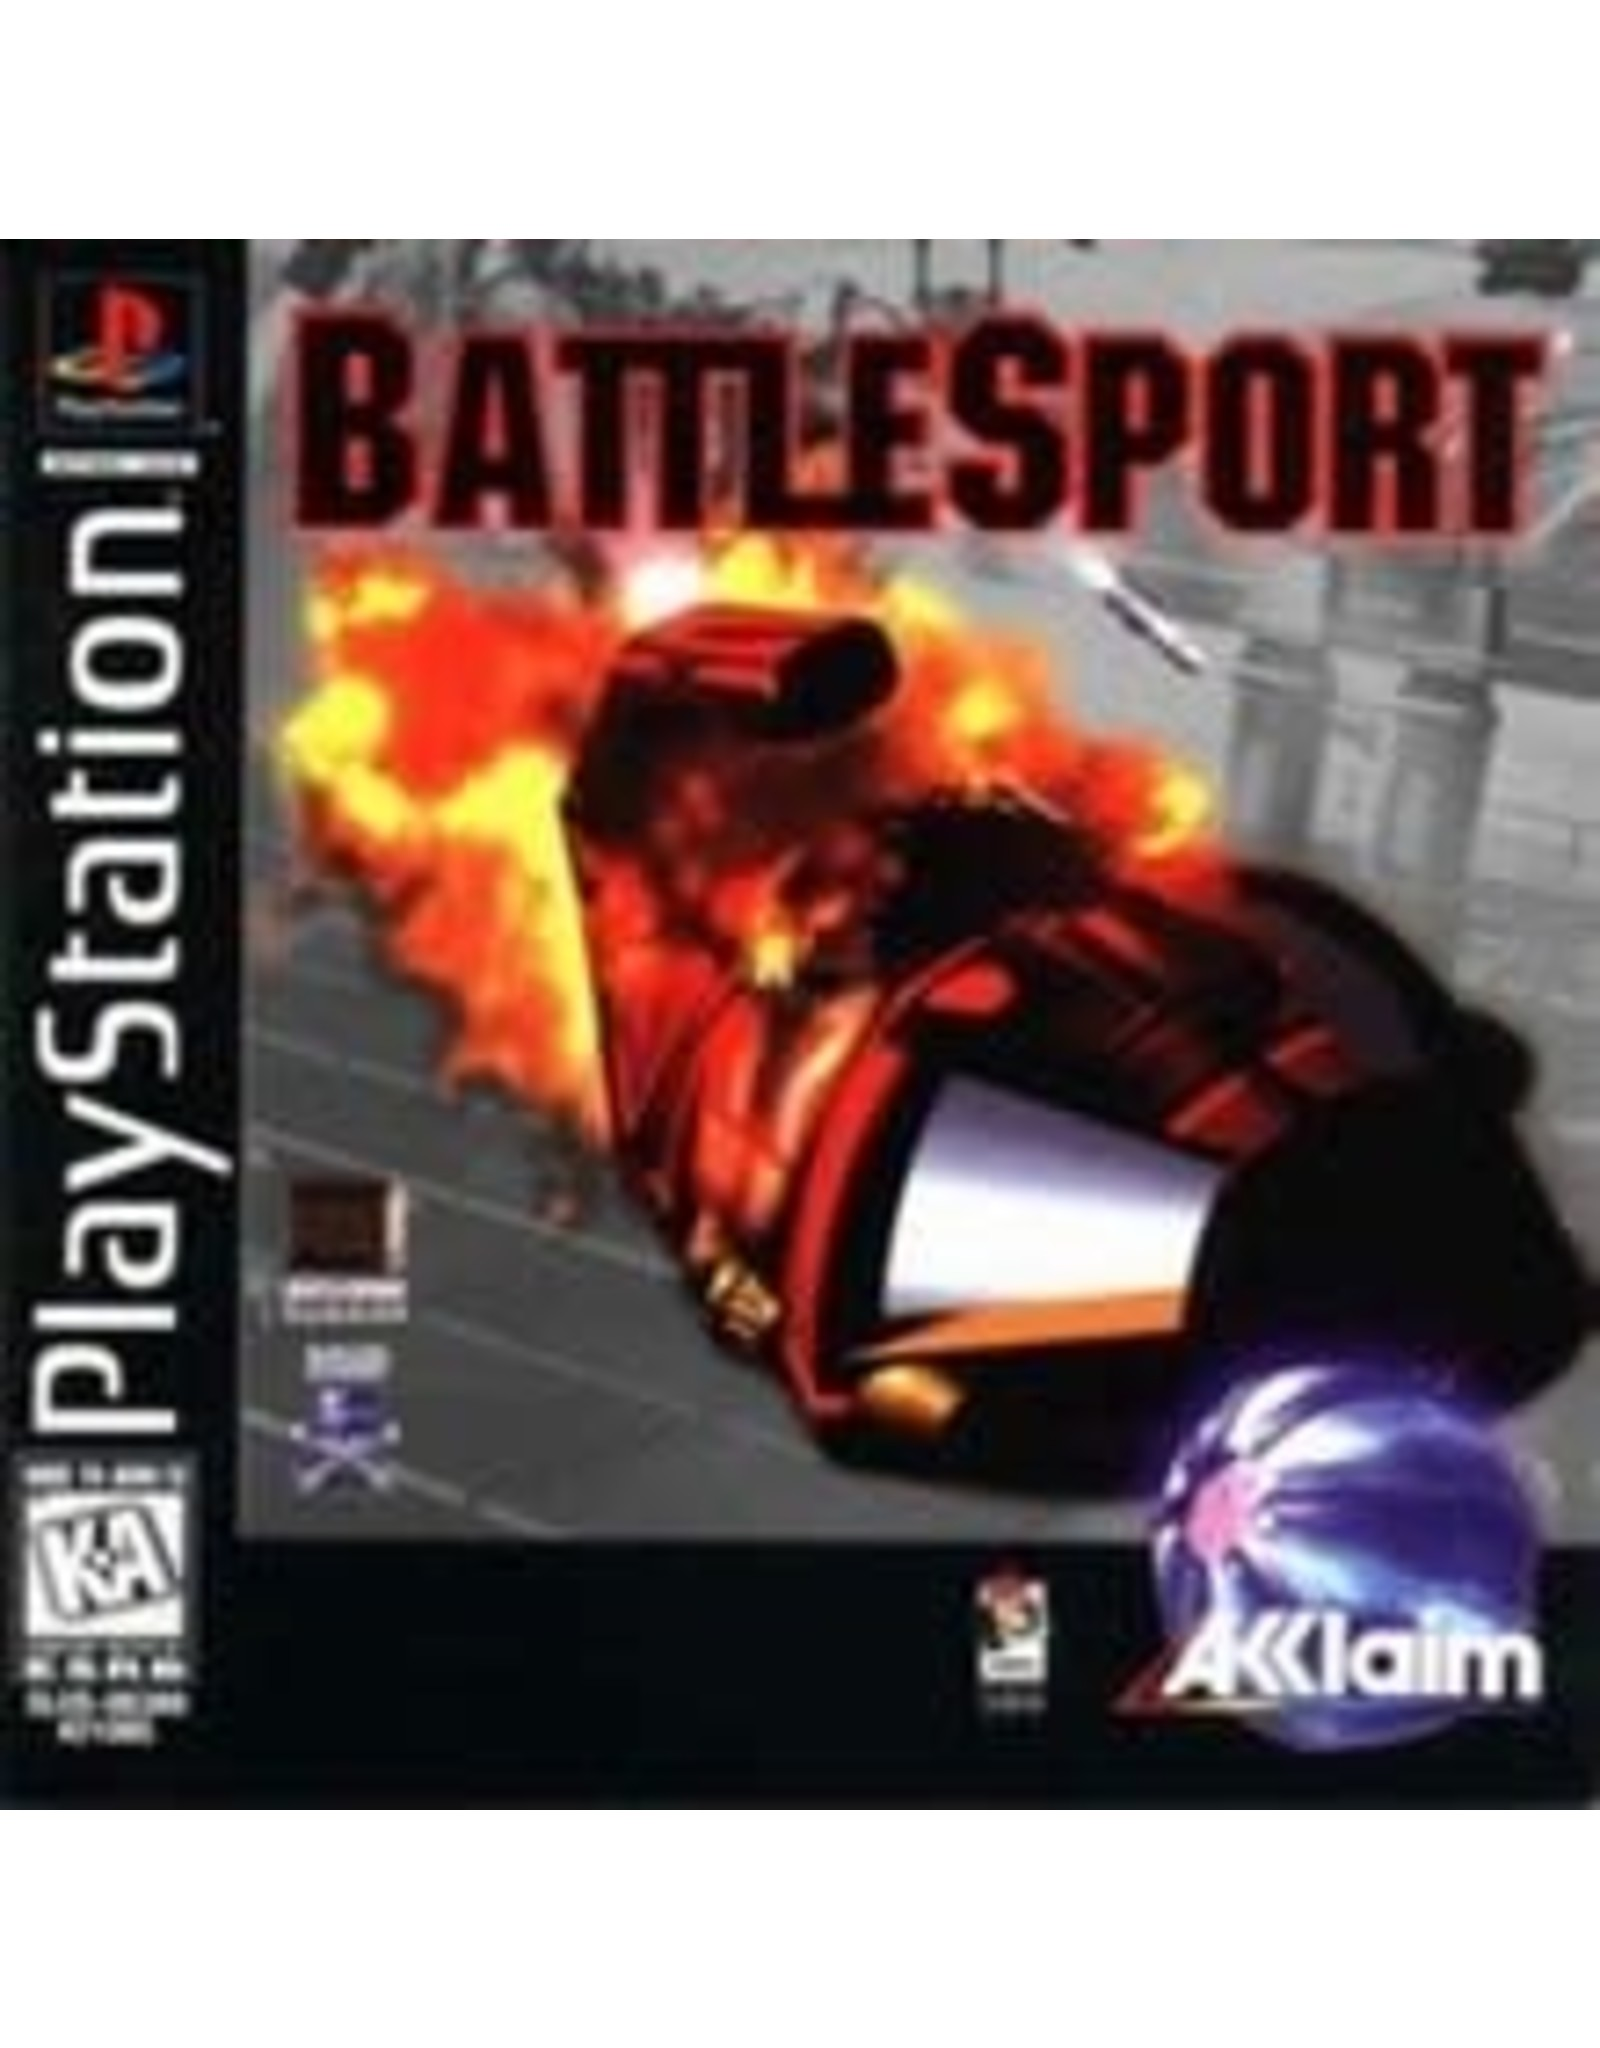 Playstation Battlesport (Stickers On Manual and Disc, CiB)